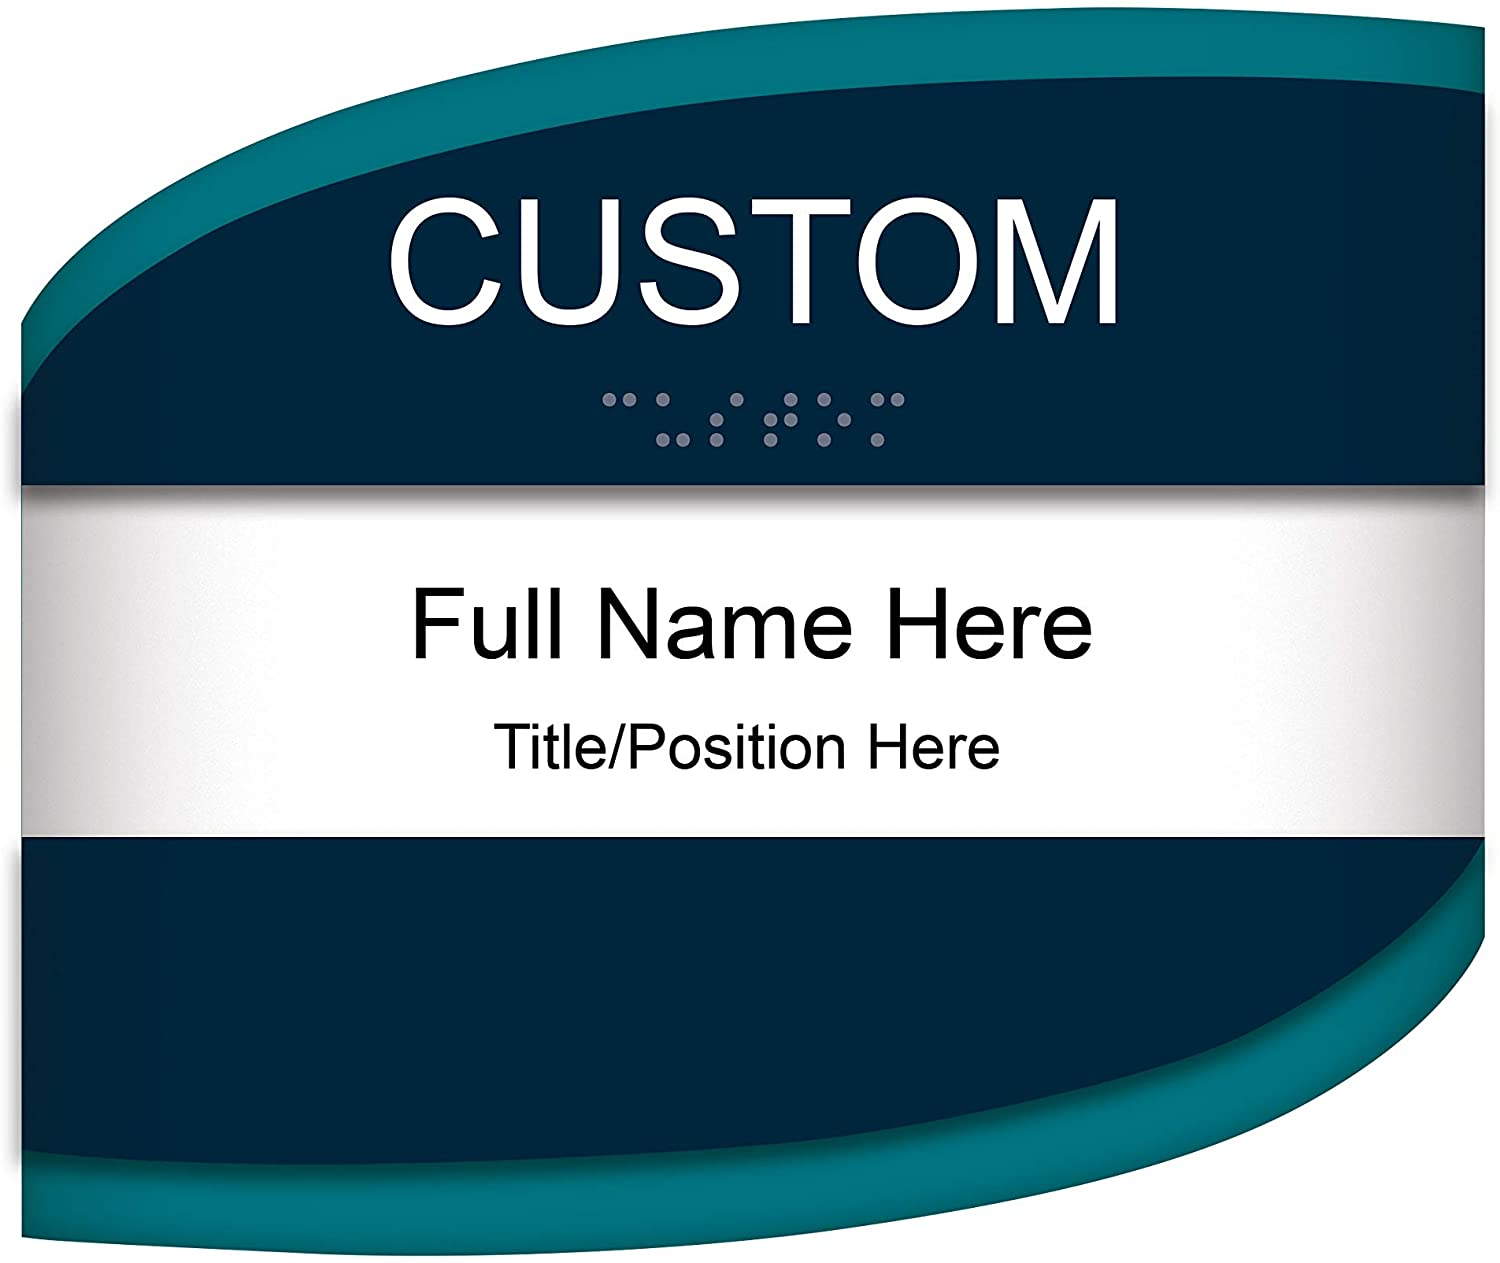 Customizable ADA Compliant Room ID with Changeable Paper Insert Sign 5.5x8